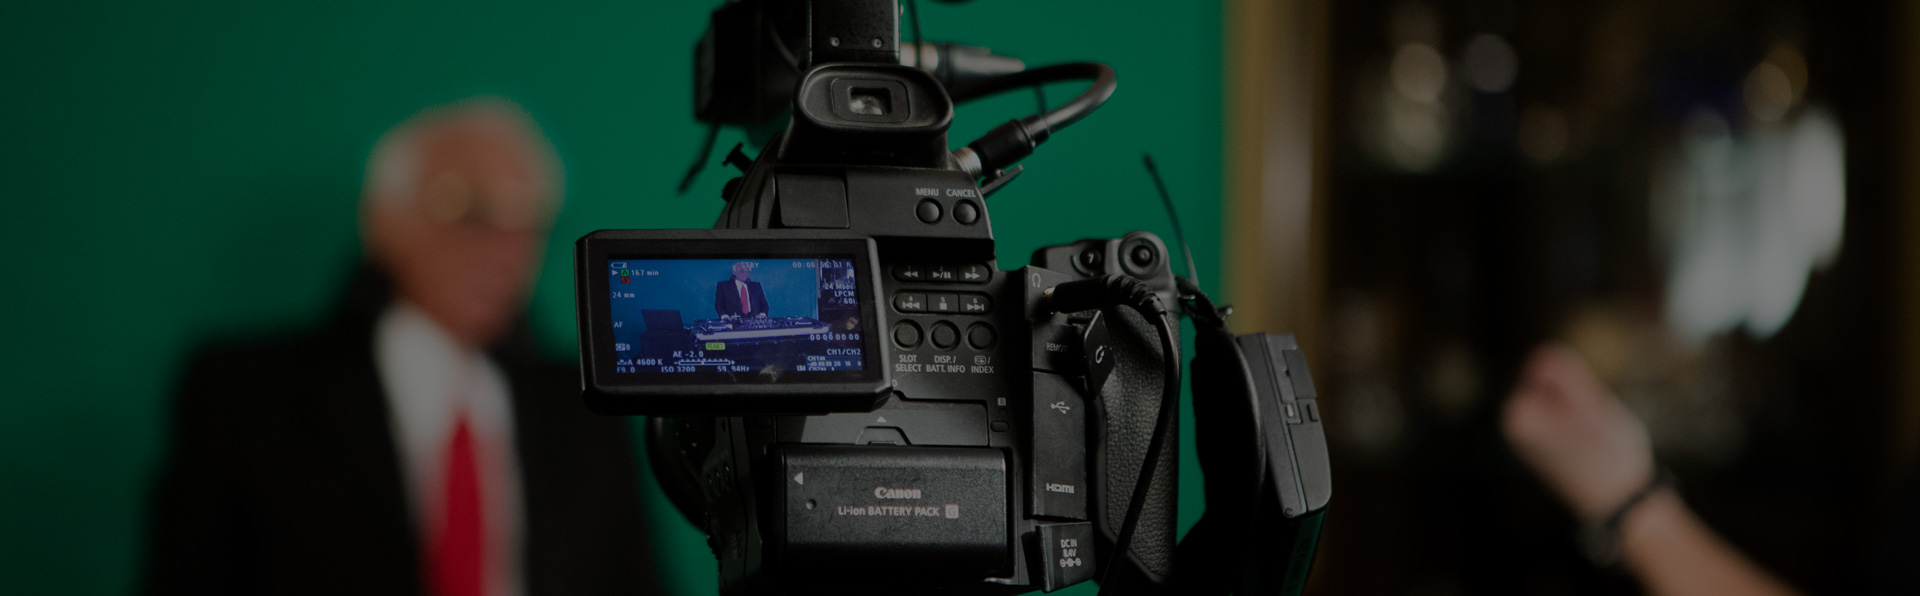 Video Production Company in Tampa, FL and Buffalo, NY